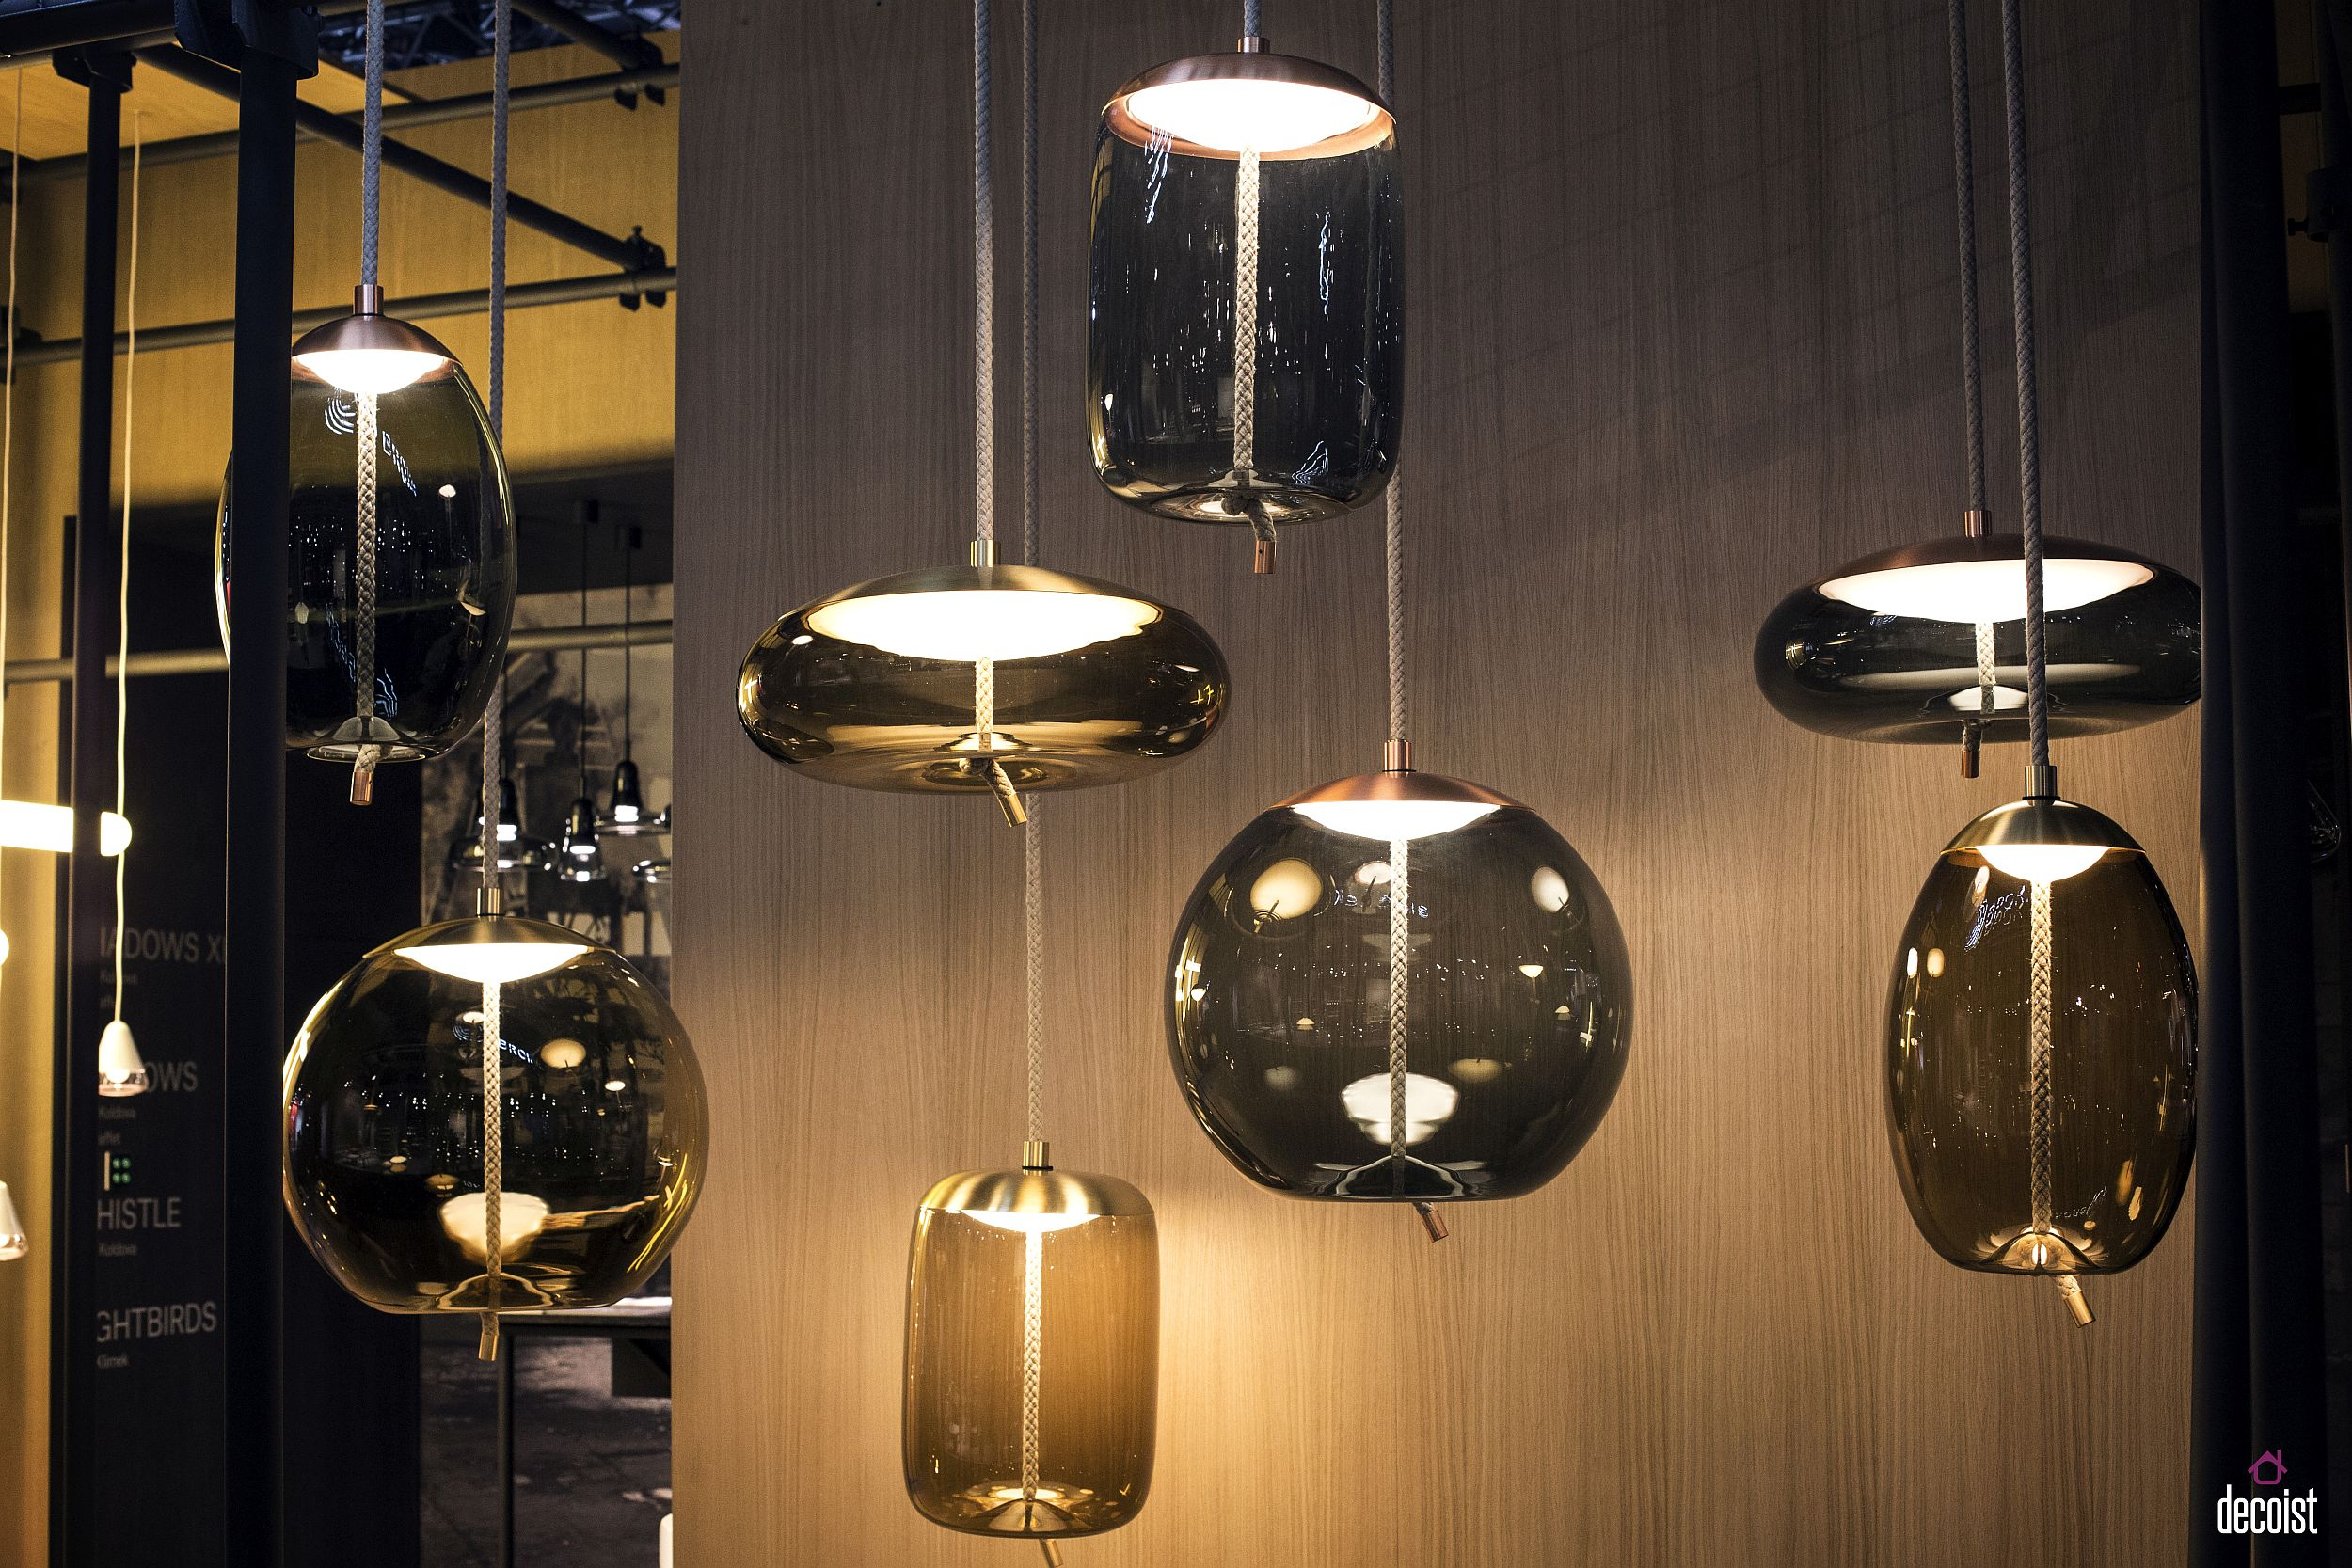 Handmade bohemian glass pendants crafted to perfection Novel Trends: 75 Dazzling Lighting Ideas to Fall in Love With